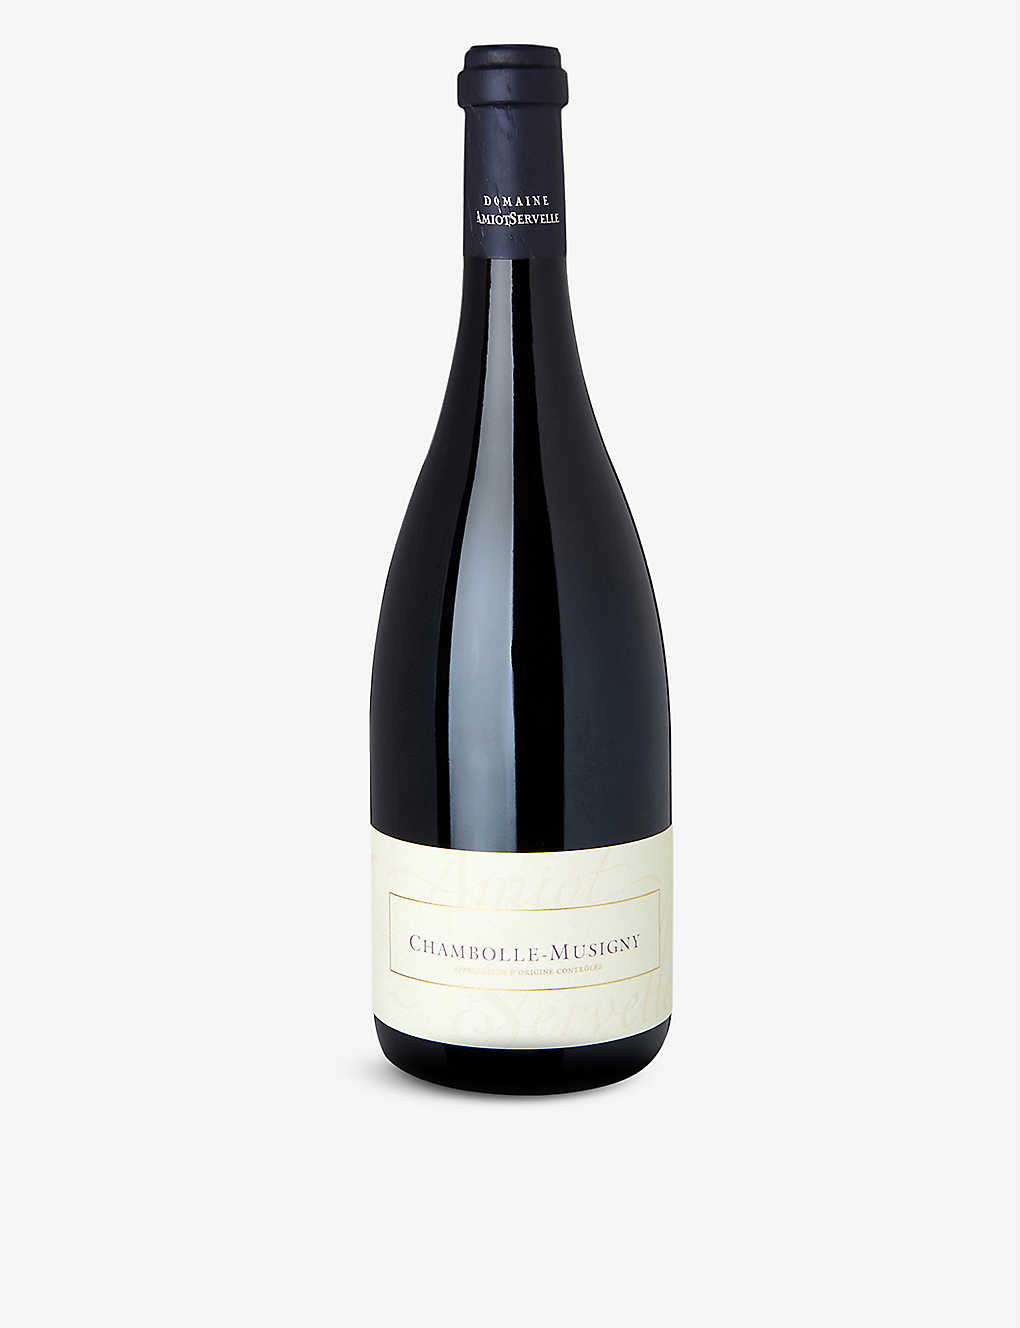 BURGUNDY: Domaine Amiot-Servelle 2014 Chambolle-Musigny 700ml